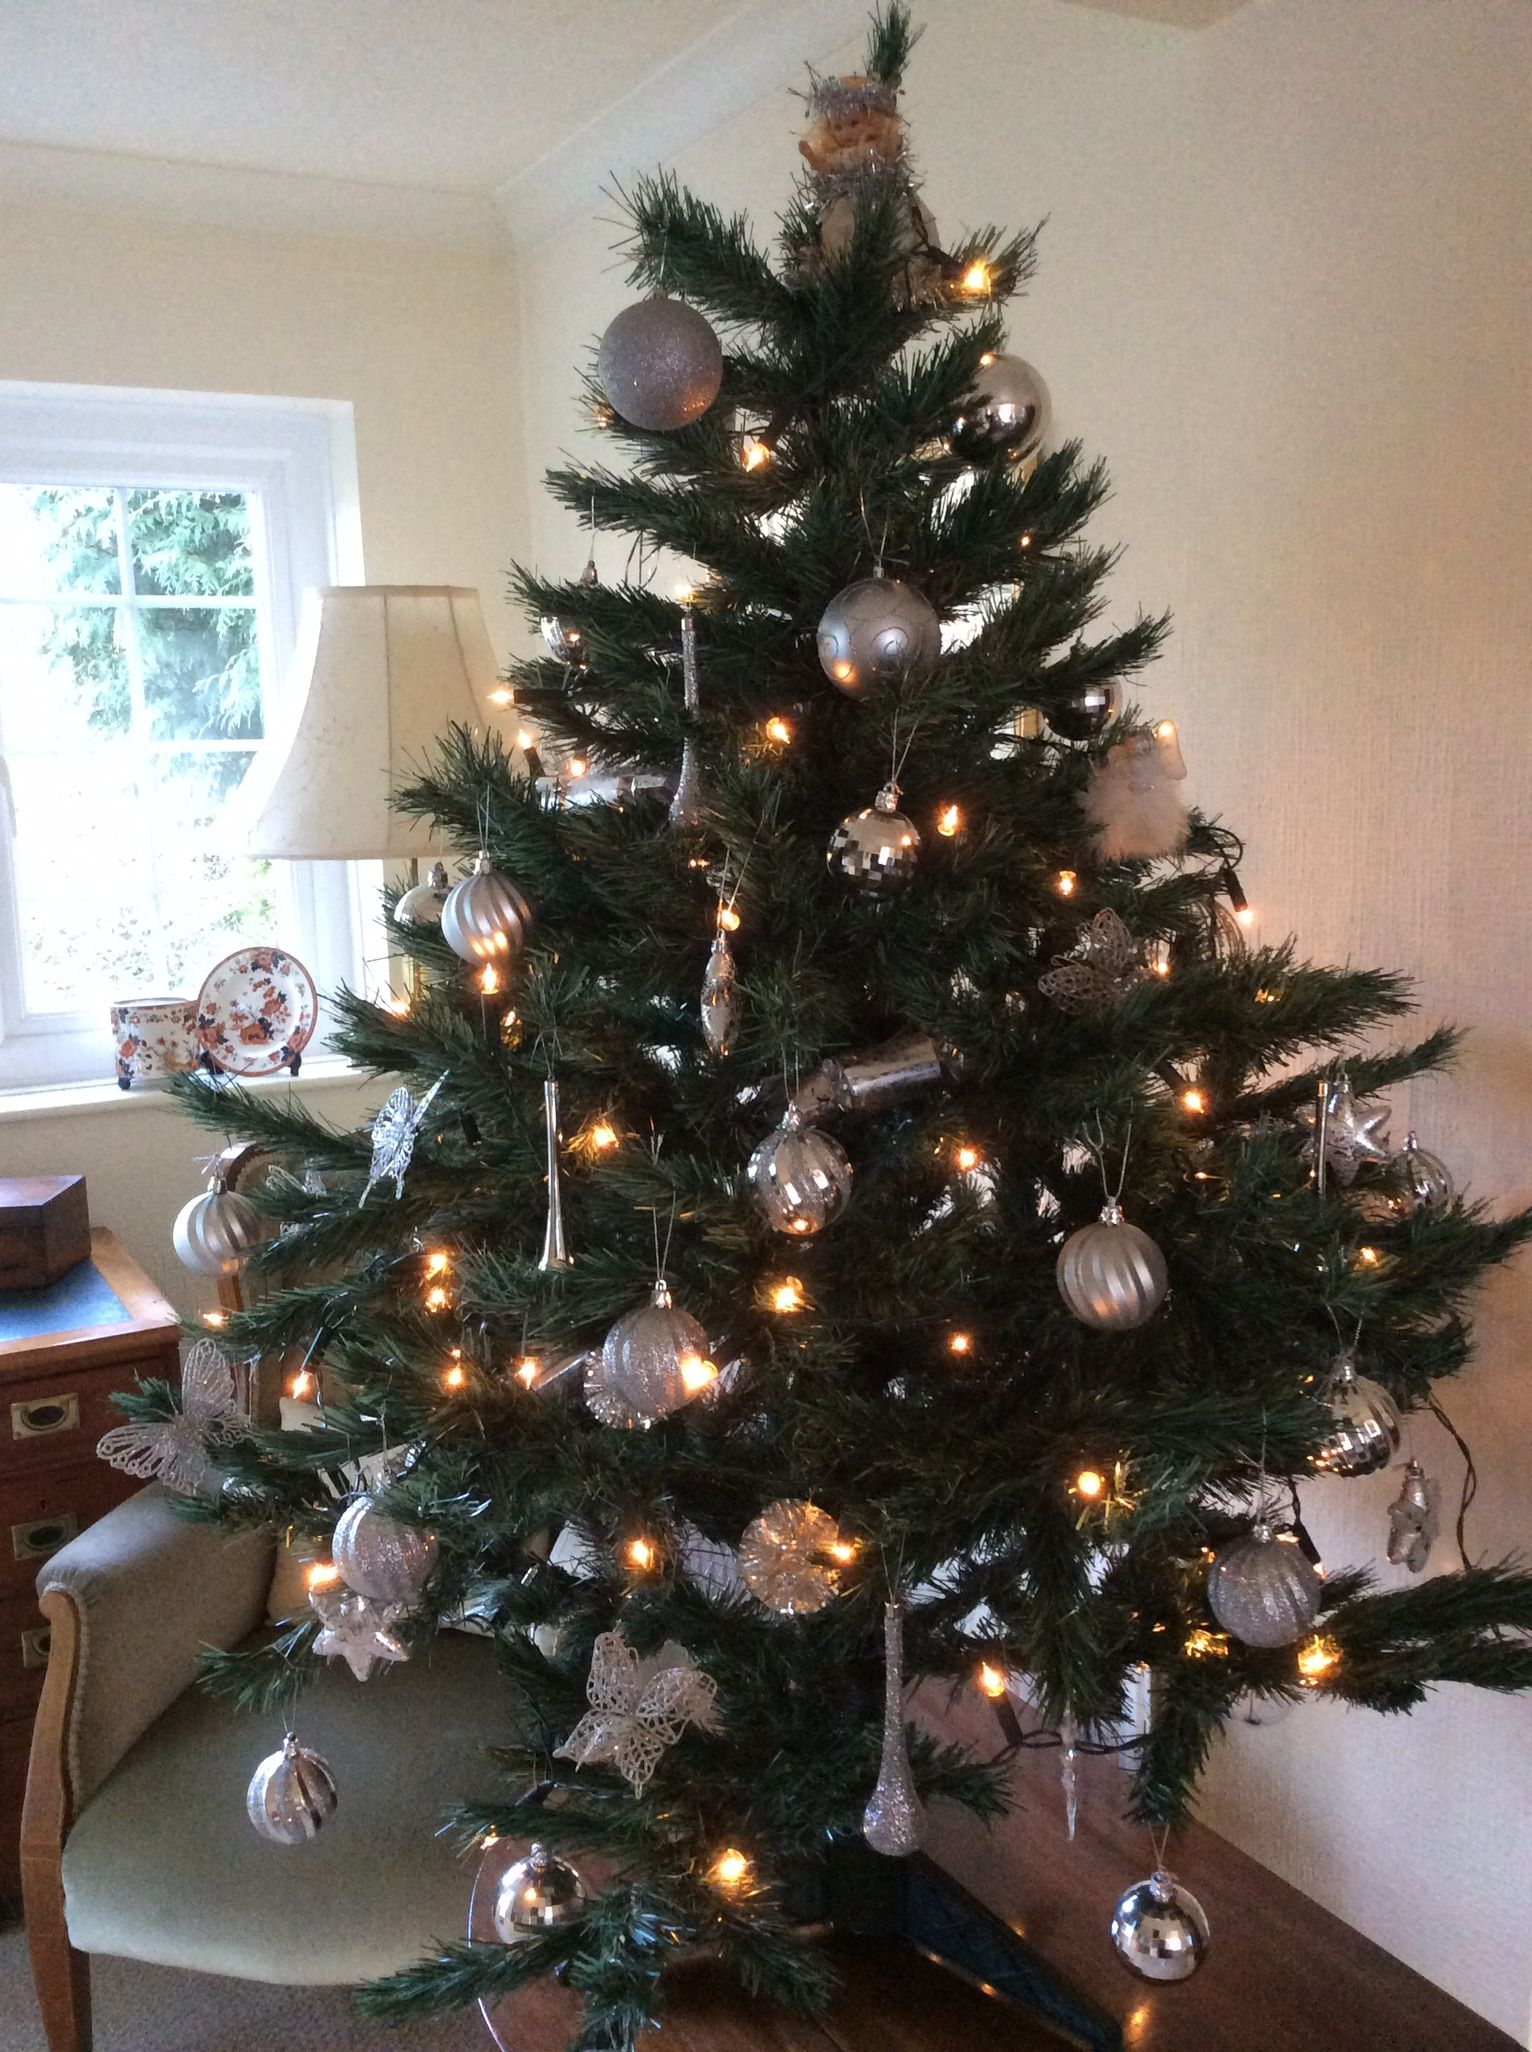 Christmas 2014 needs a few more baubles and where's the presents!